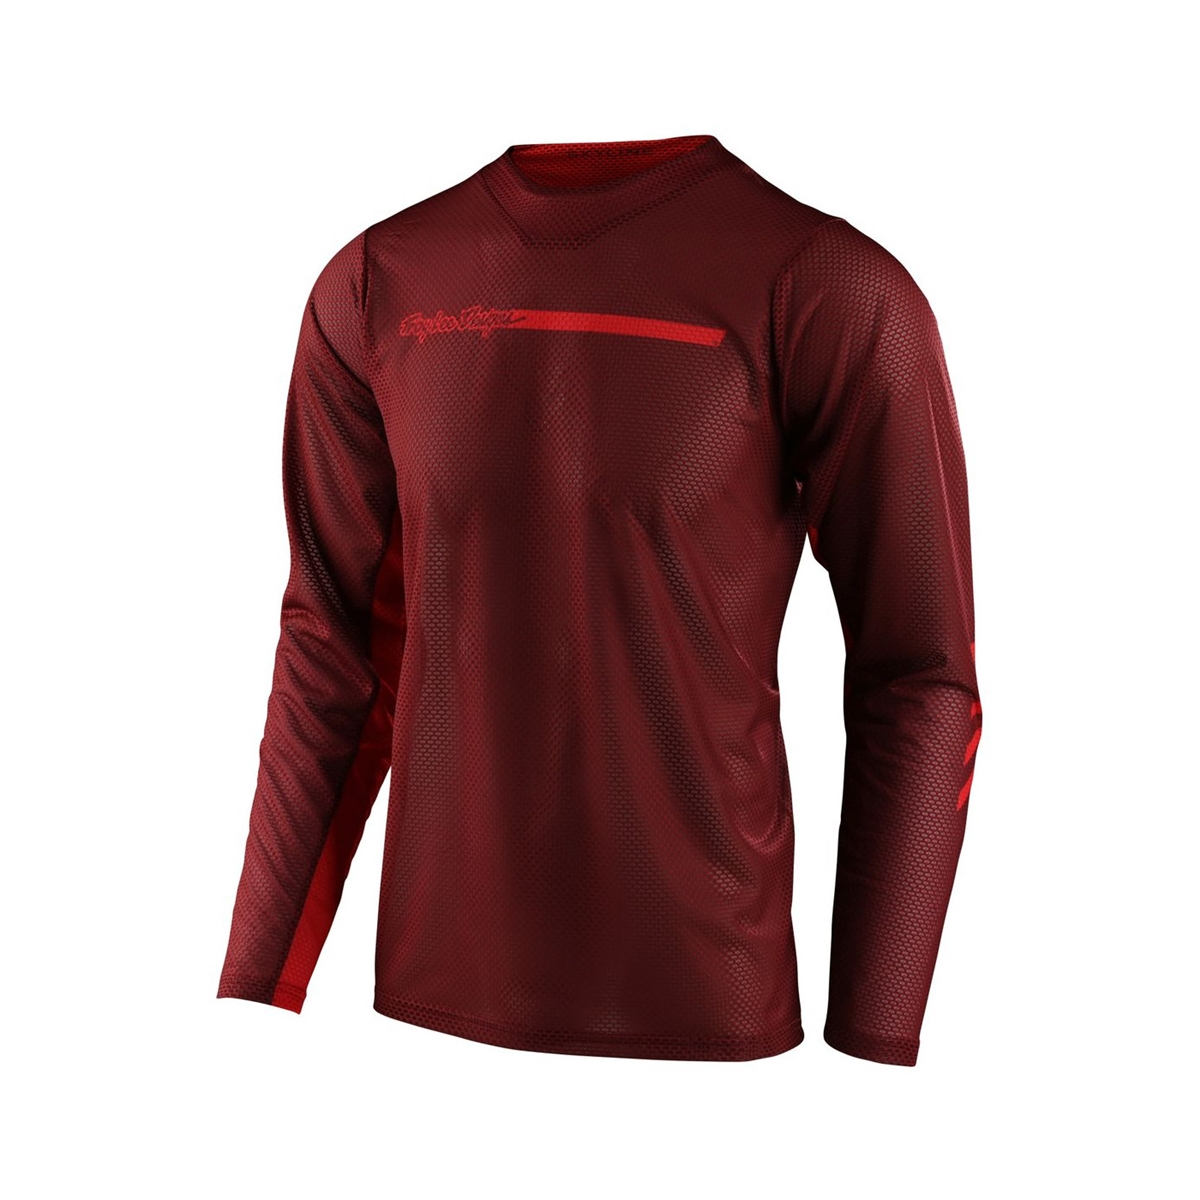 Jersey Skyline Air Channel Long-Sleeve Red Size S